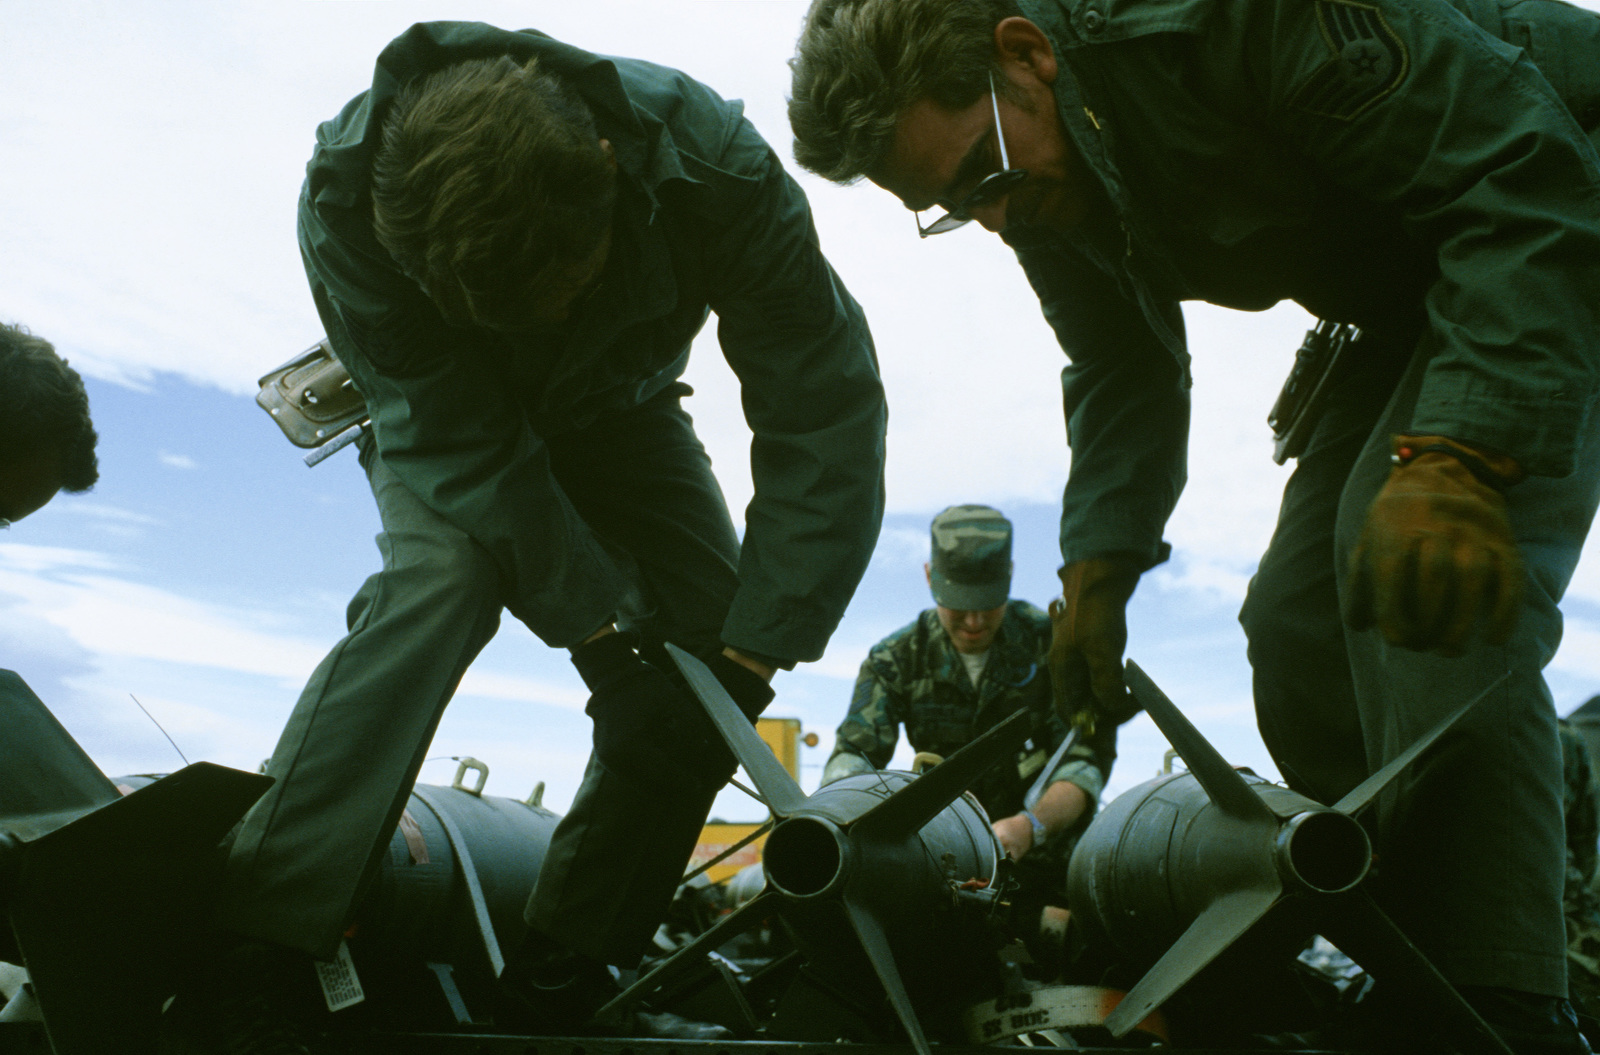 Weapons technicians prepare to upload bombs onto an A-7D Corsair II aircraft during Exercise Gallant Eagle '82